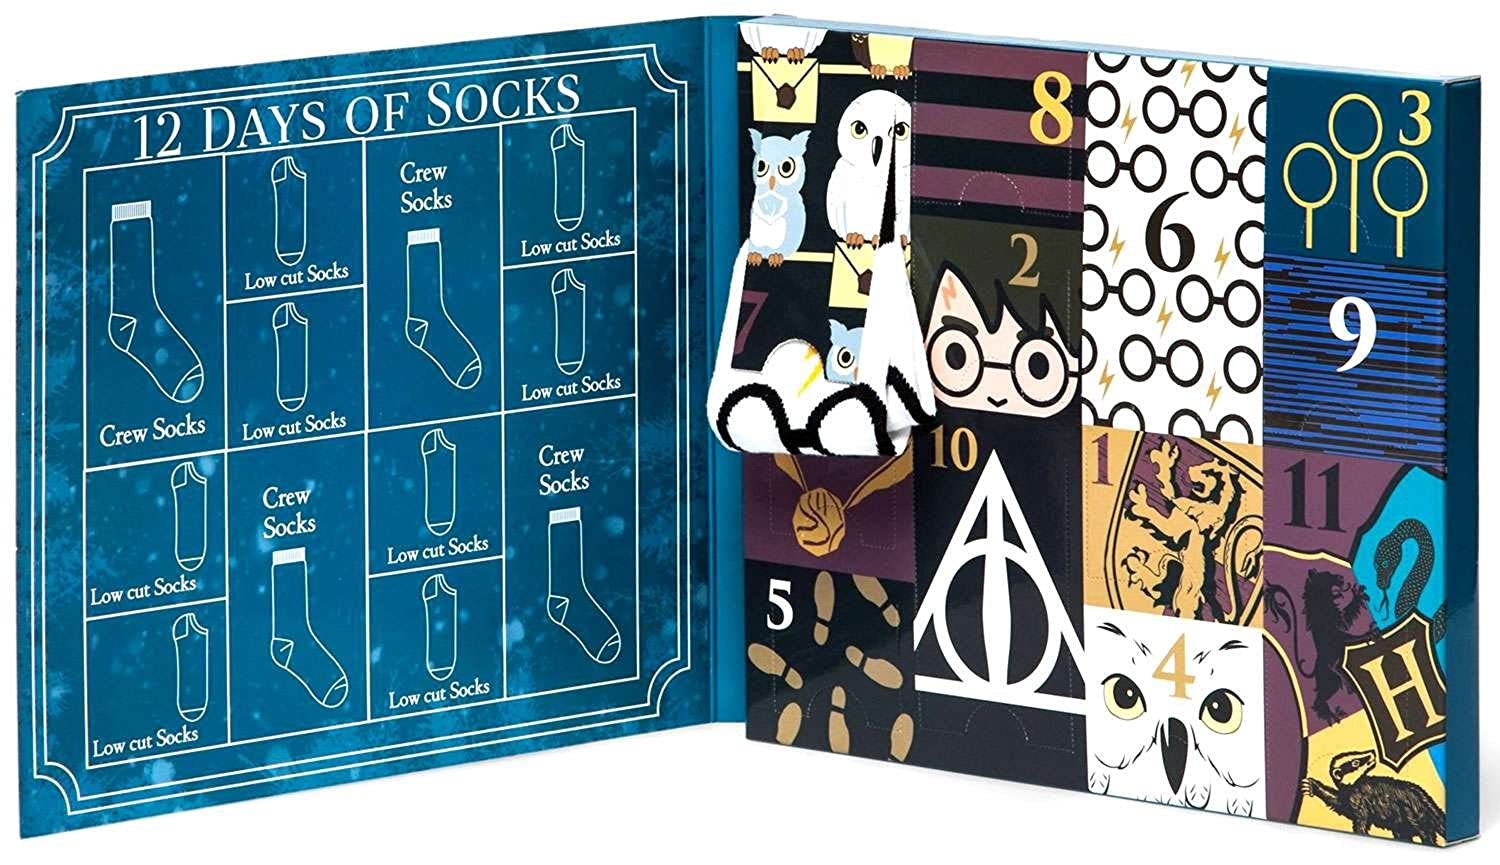 limited edition womens harry potter 12 days of socks set for size 4 10 crew low cut socks at amazon womens clothing store